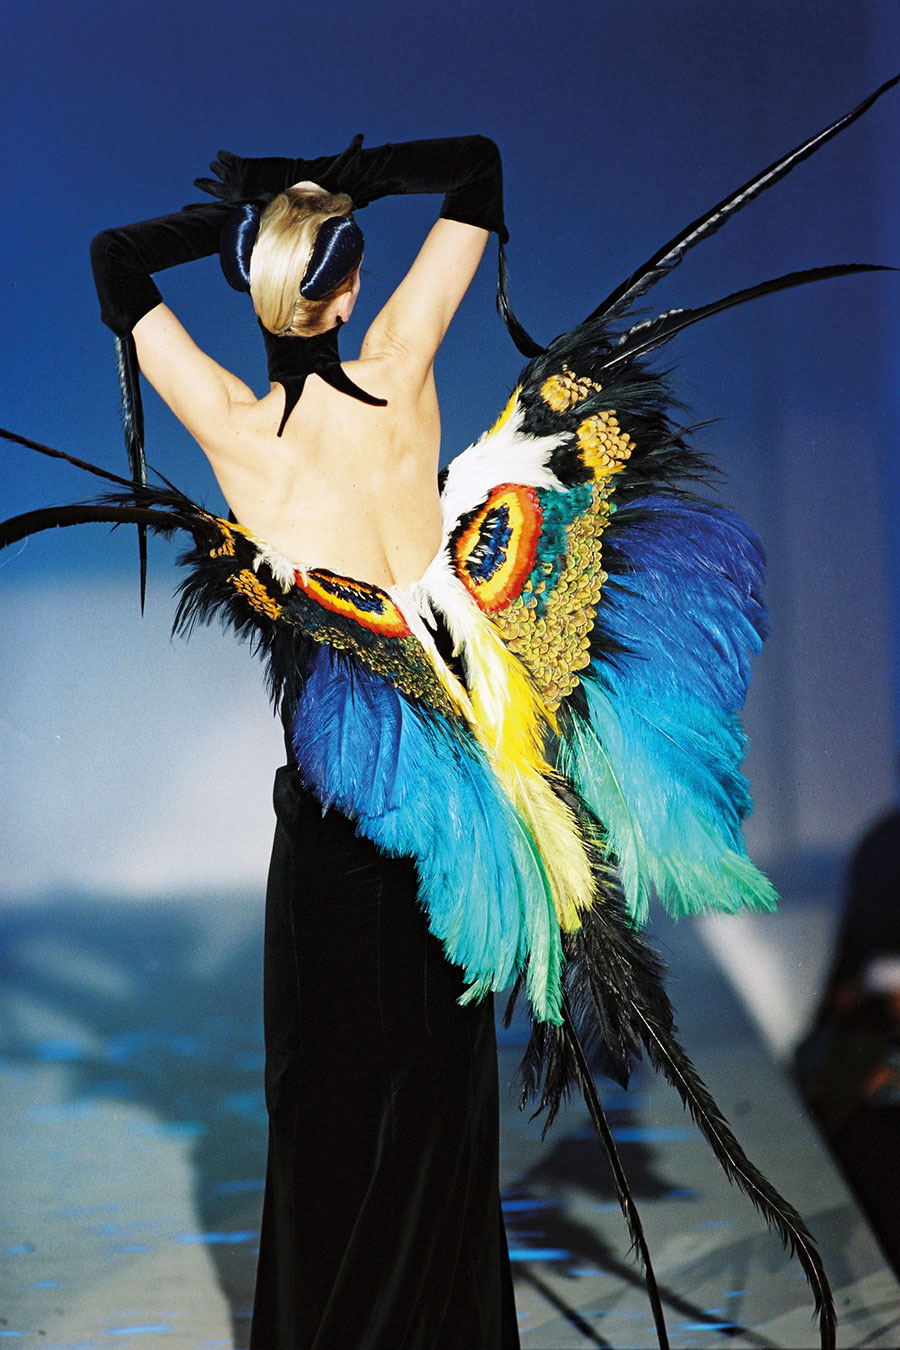 Patrice Stable Outfit: Thierry Mugler, Kollektion Les Insectes, Haute Couture Frühjahr/Sommer 1997